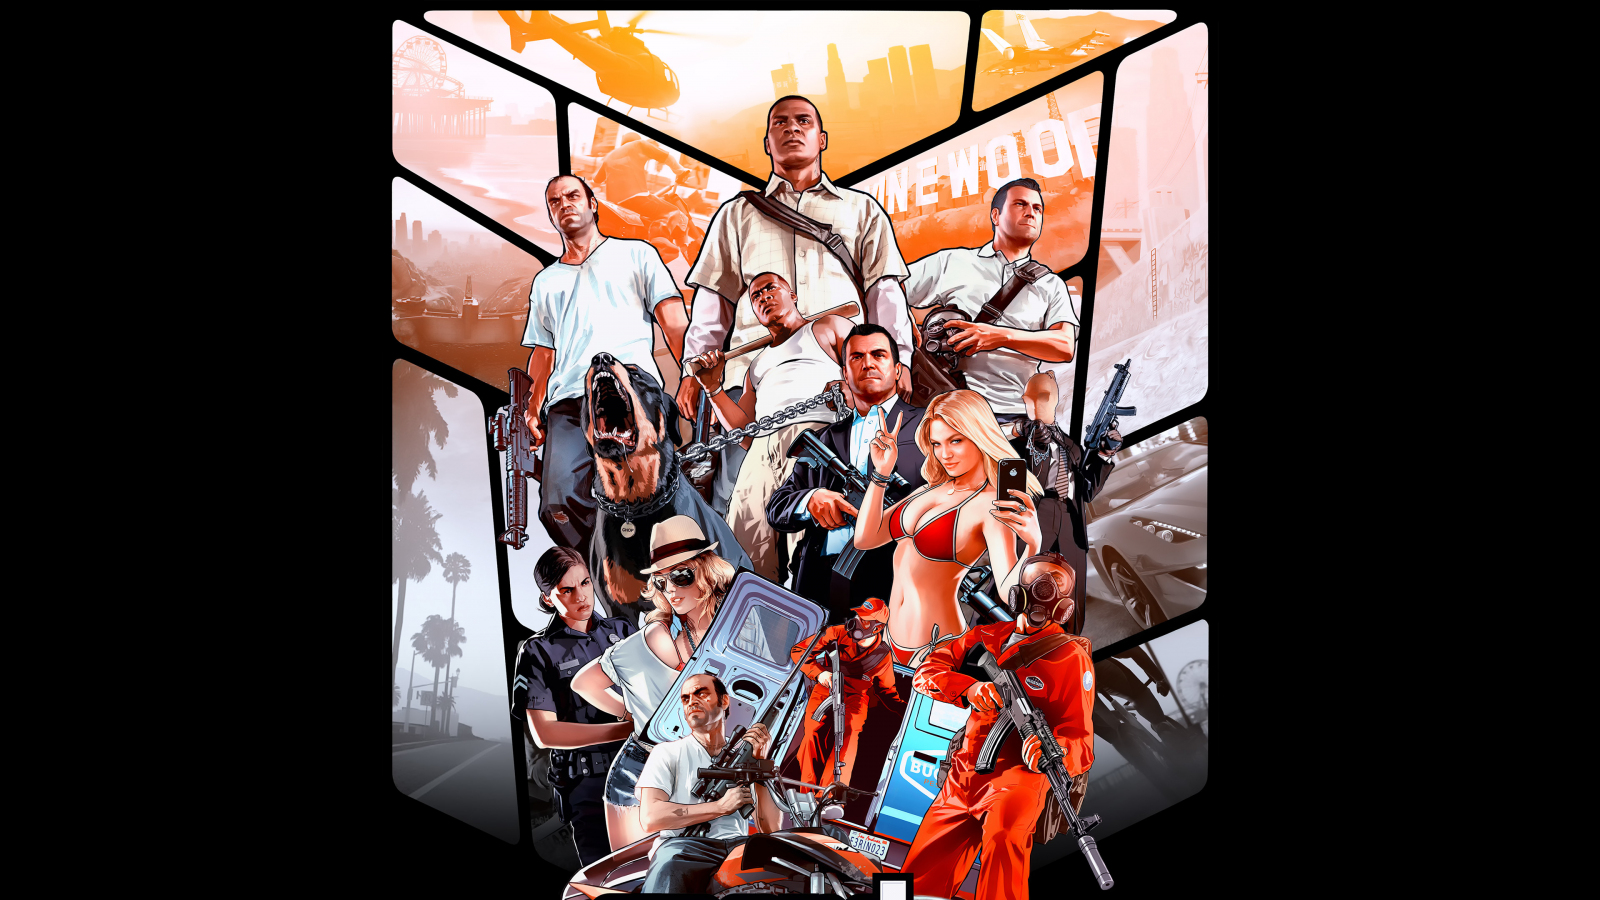 Grand Theft Auto V Poster Video Game 1600x900 Wallpaper